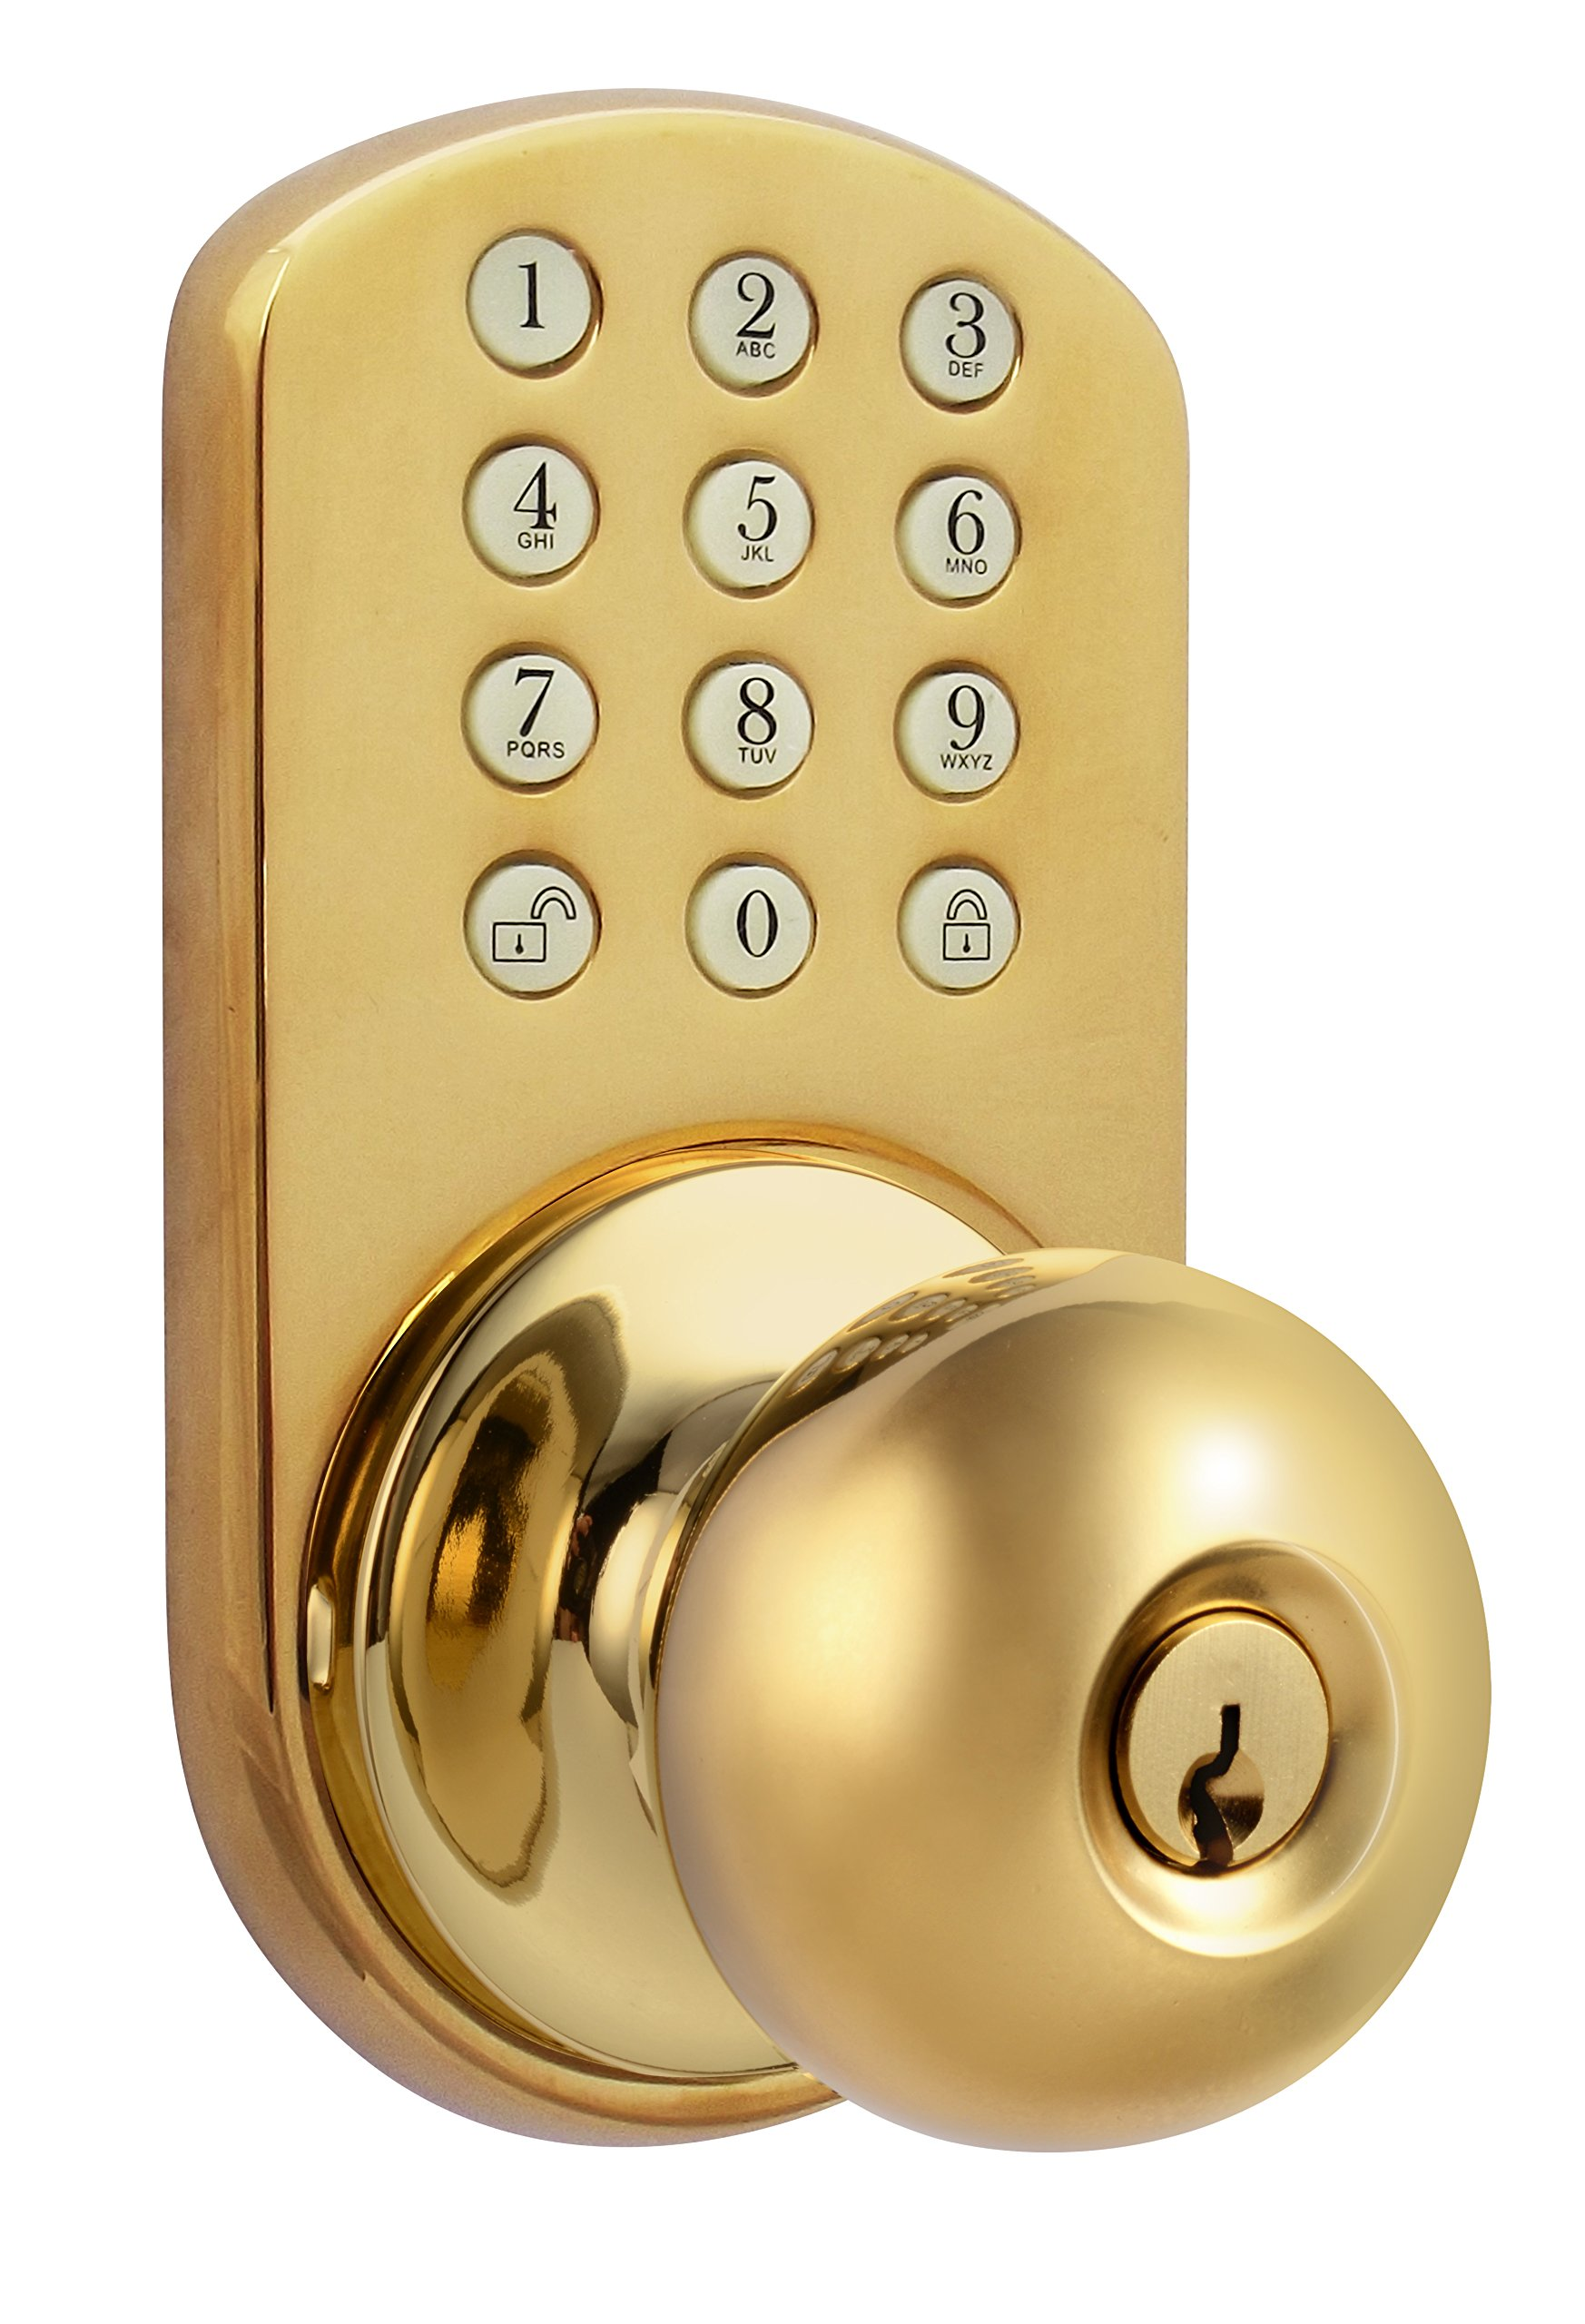 MiLocks TKK-02P Digital Door Knob Lock with Electronic Keypad for Interior Doors, Polished Brass